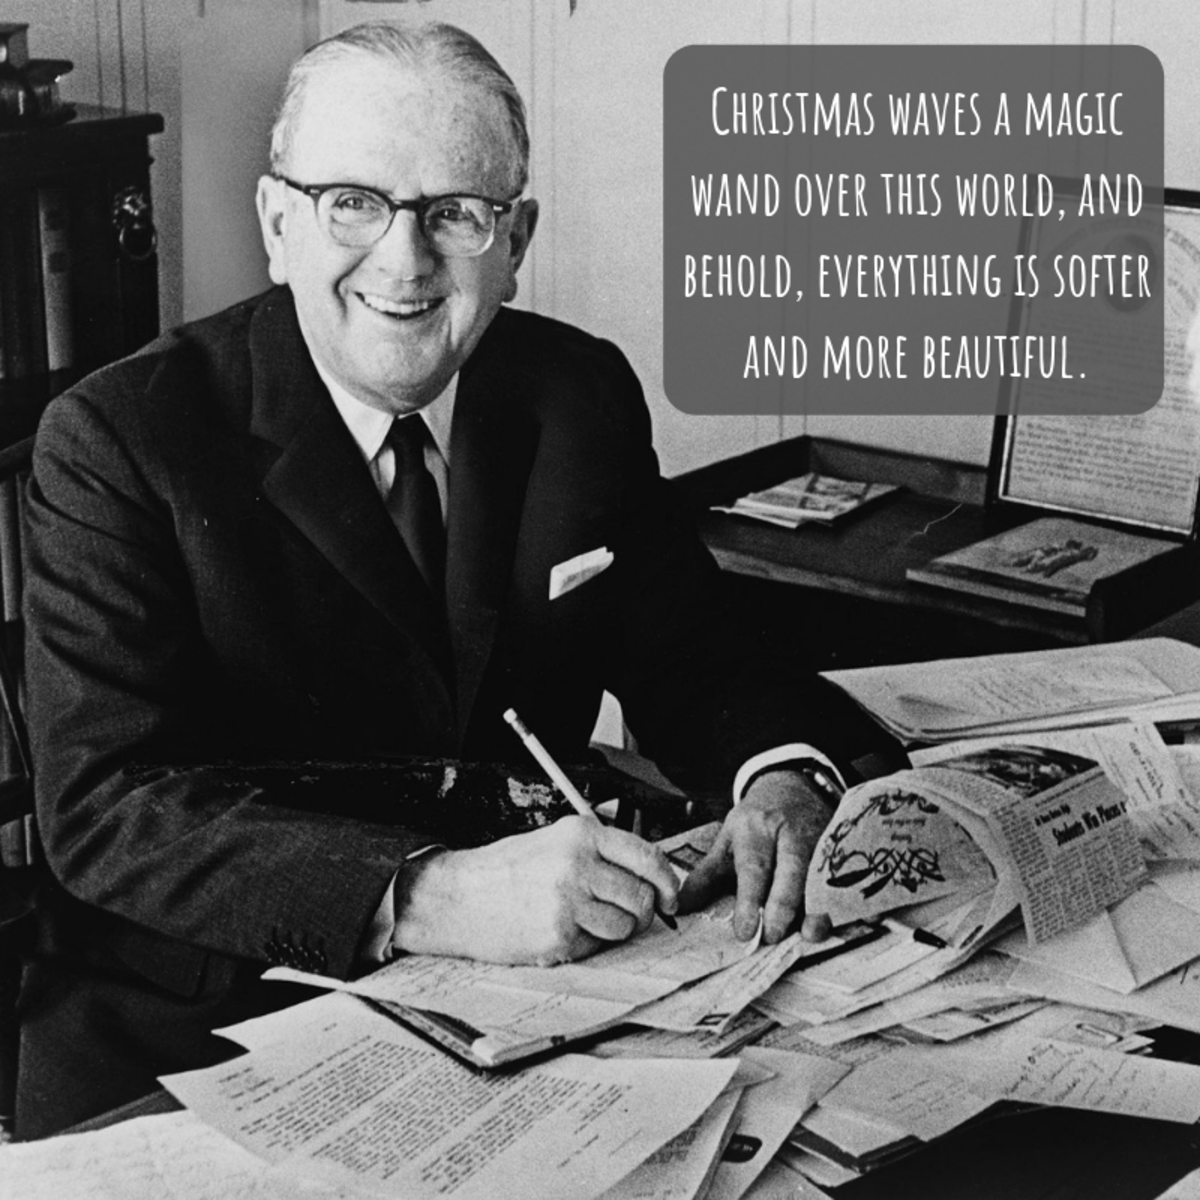 If you're stumped about what to say, why not include a quote about Christmas from one of the greats?